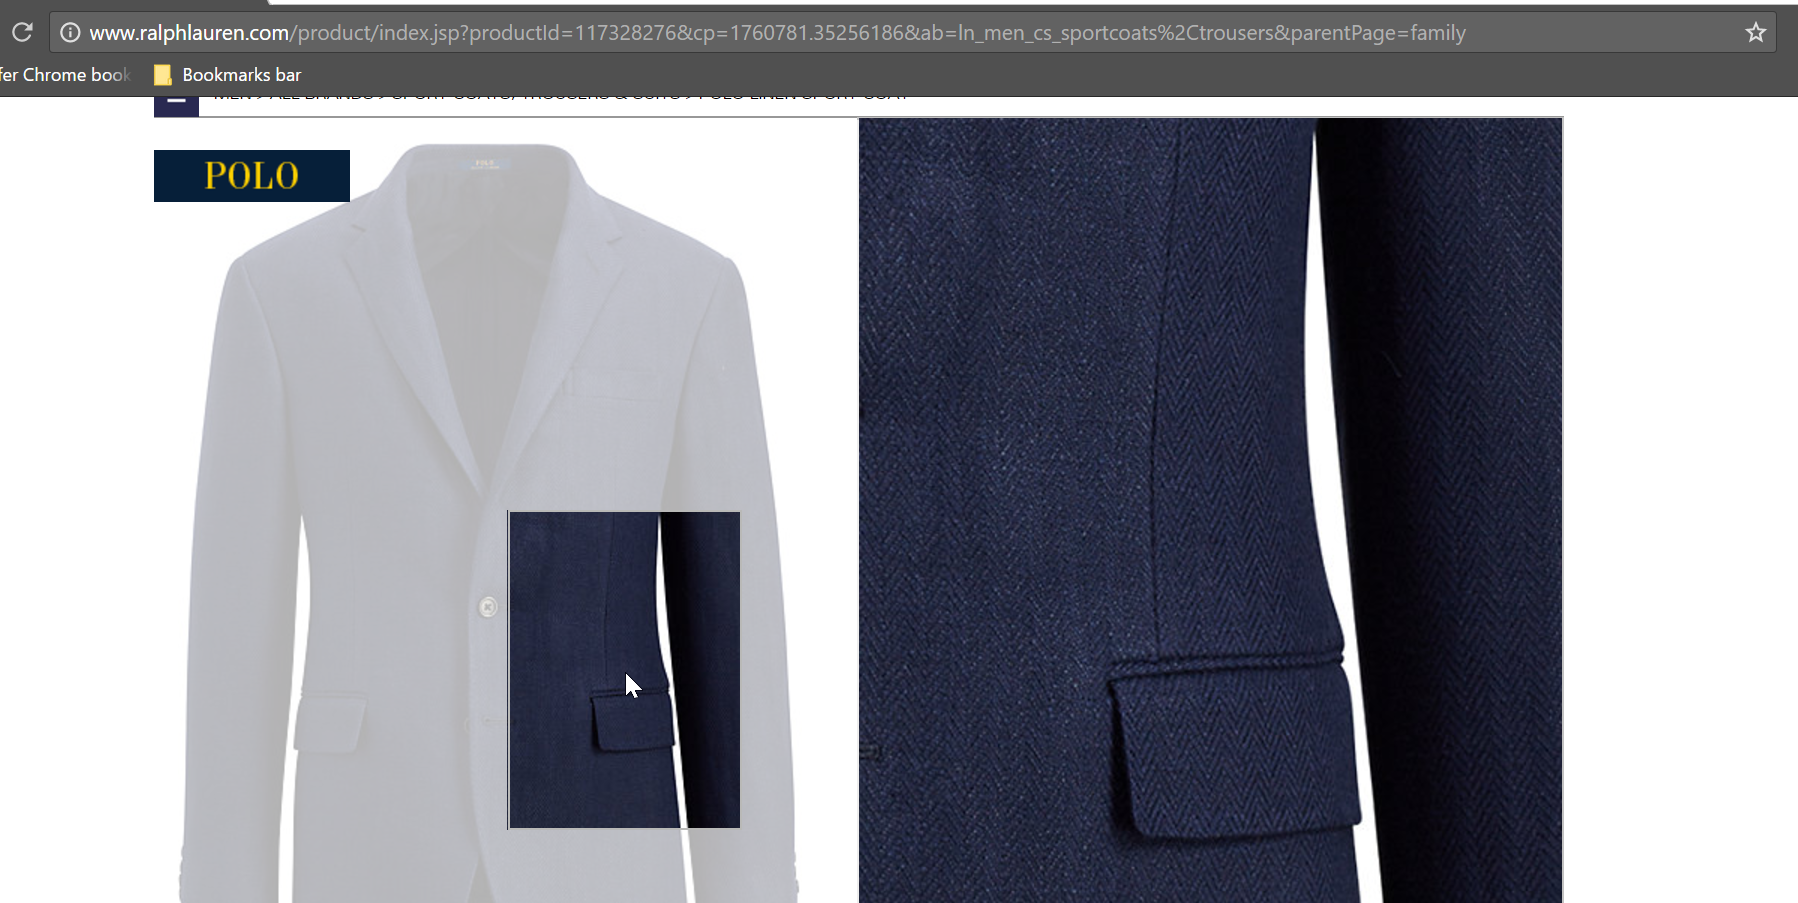 Close-up of a linen coat on a fashion product page